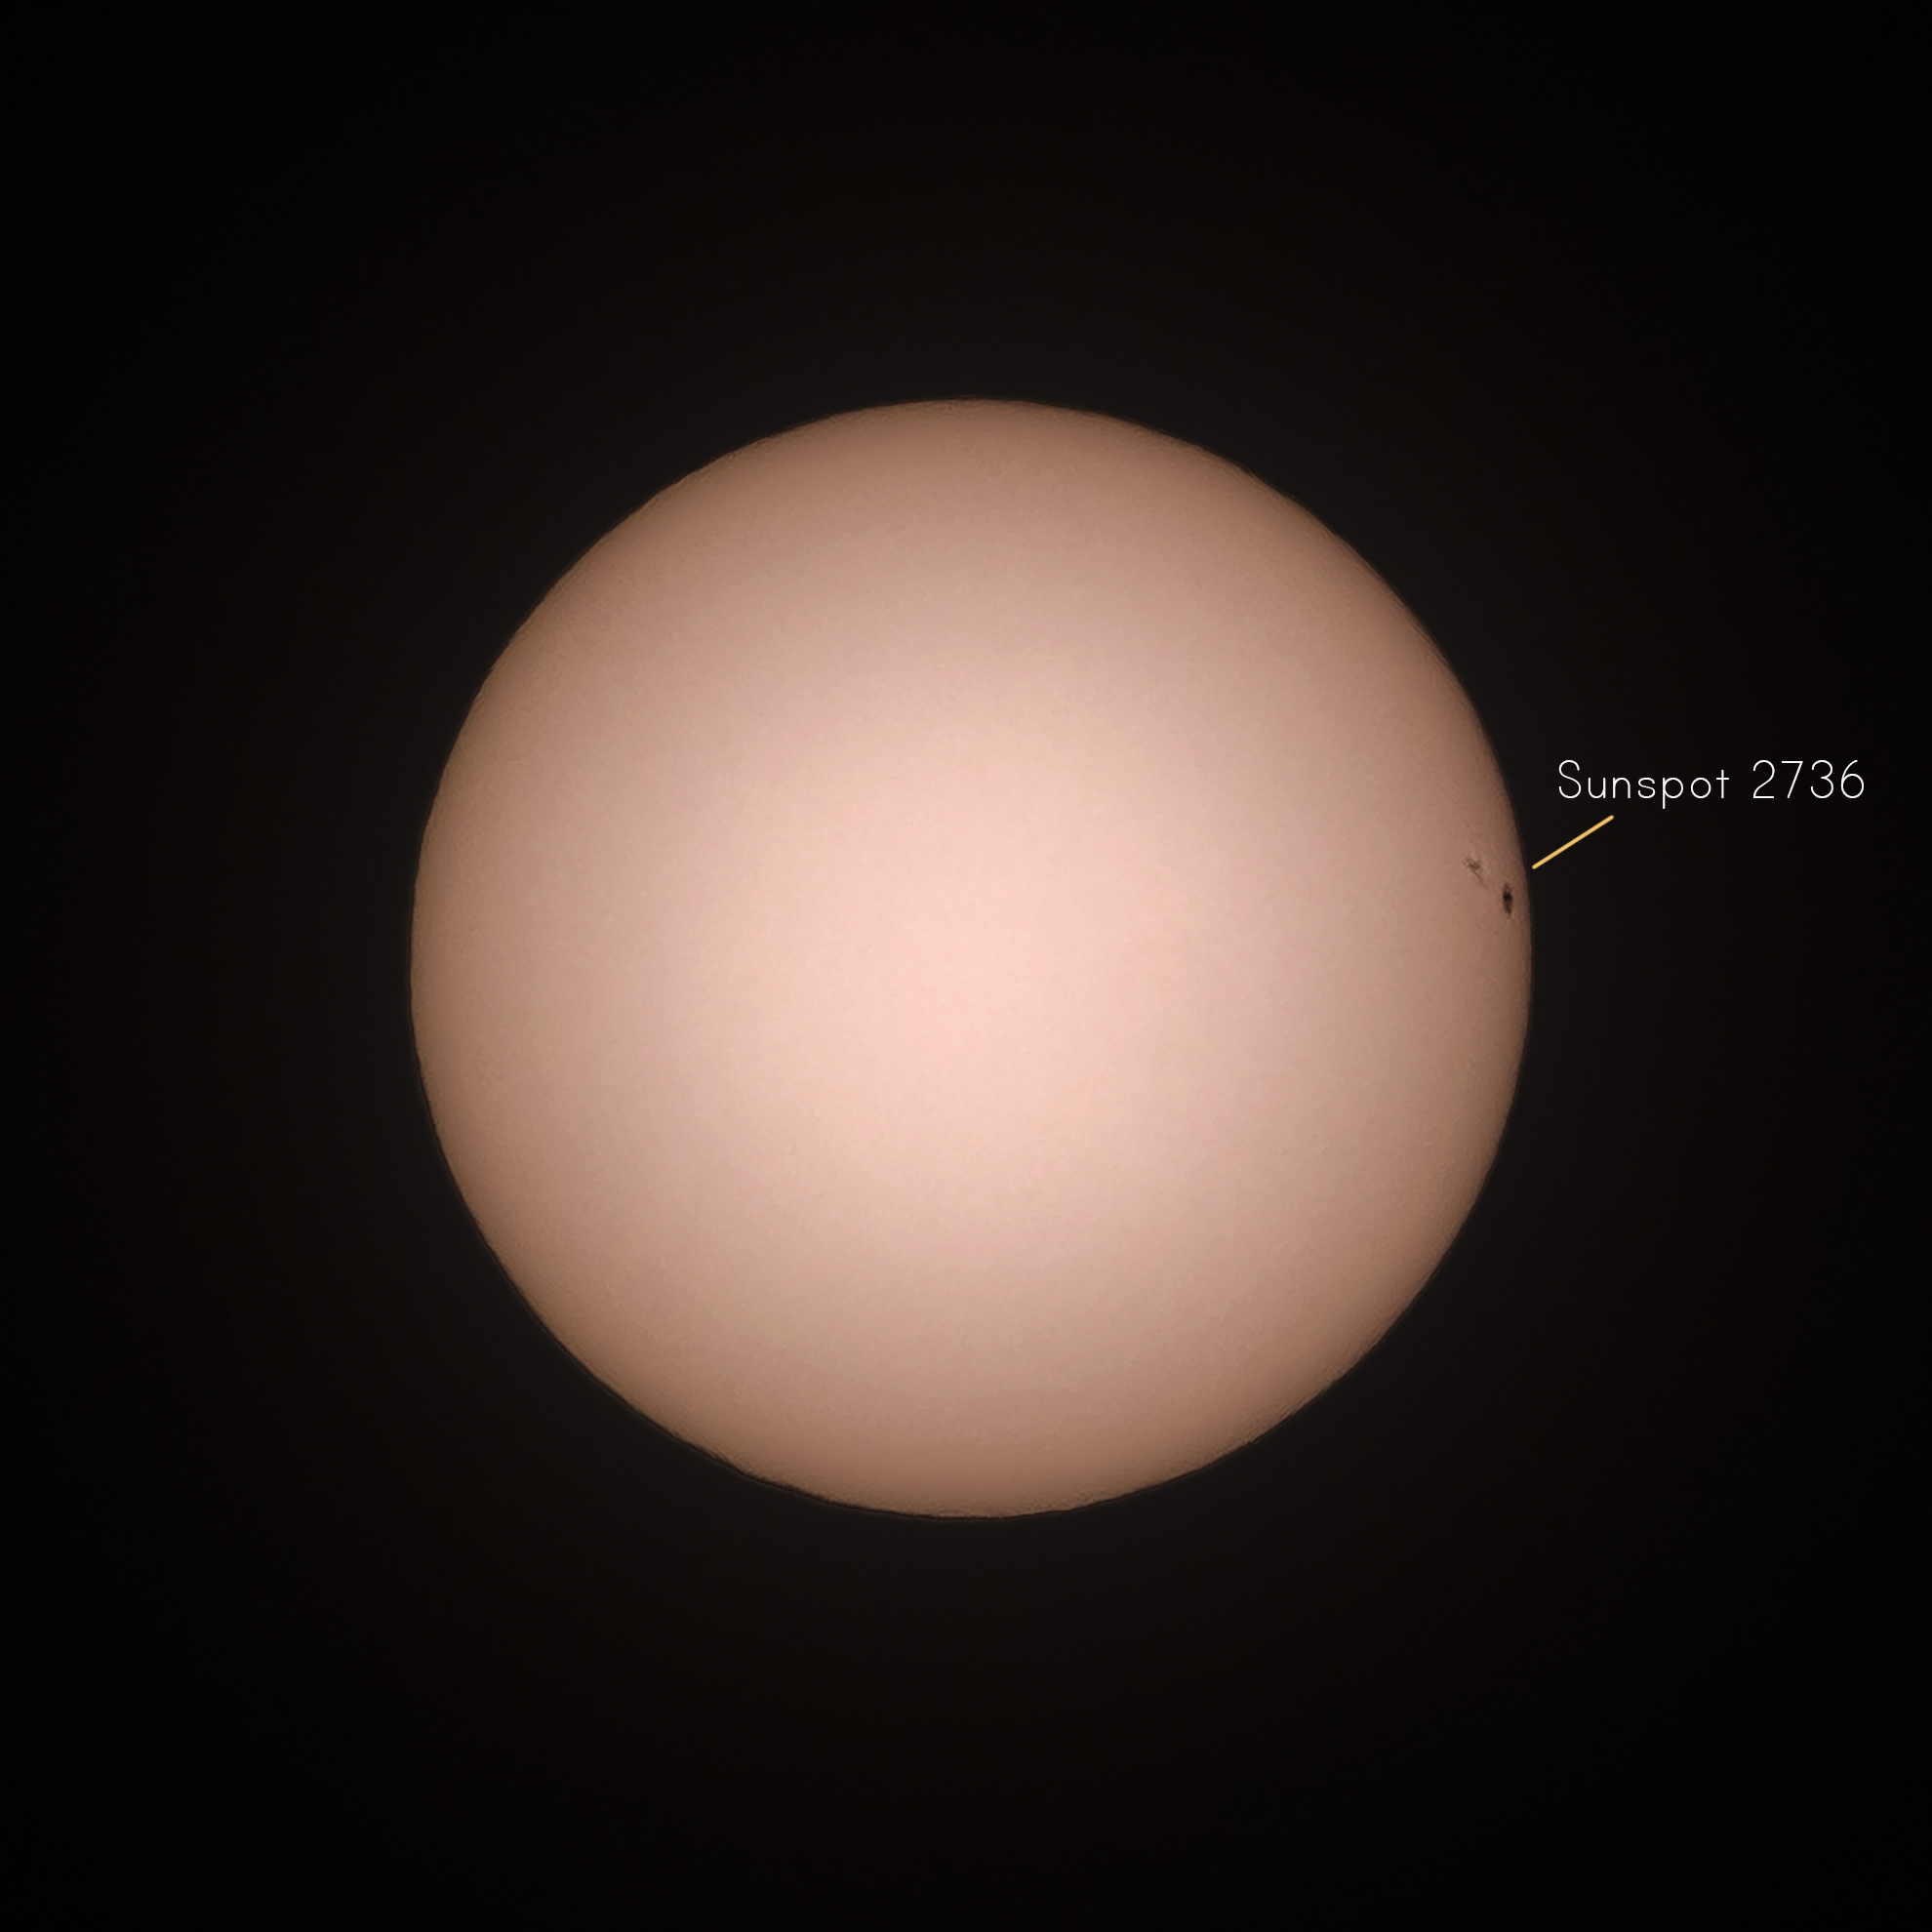 The sunspot, imaged on Saturday morning in my garden!